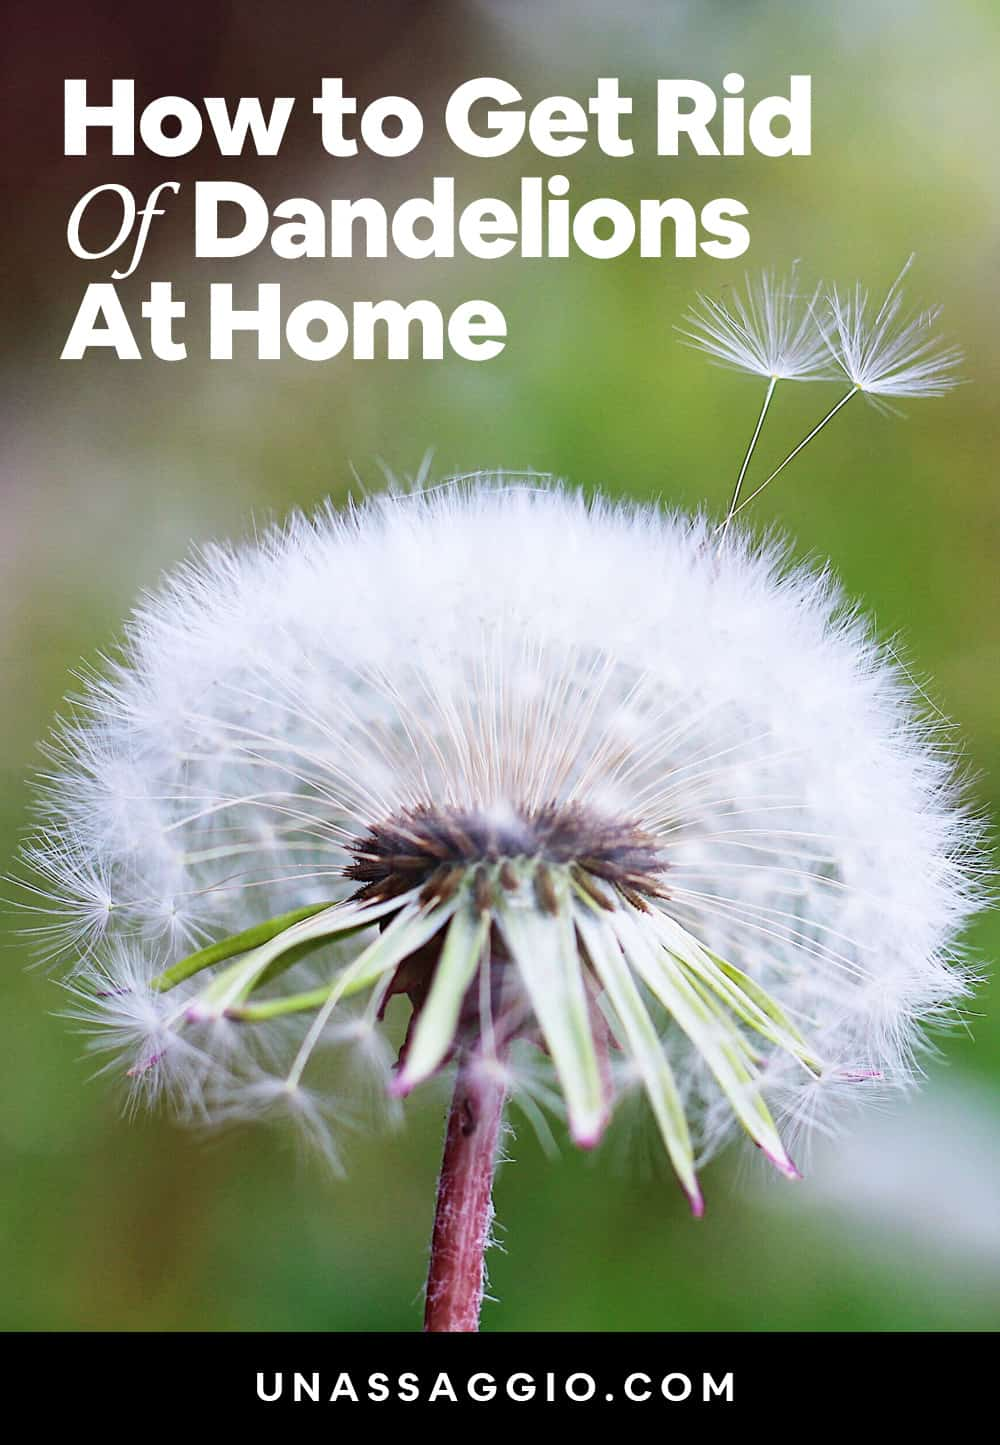 How to get rid of Dandelions at home